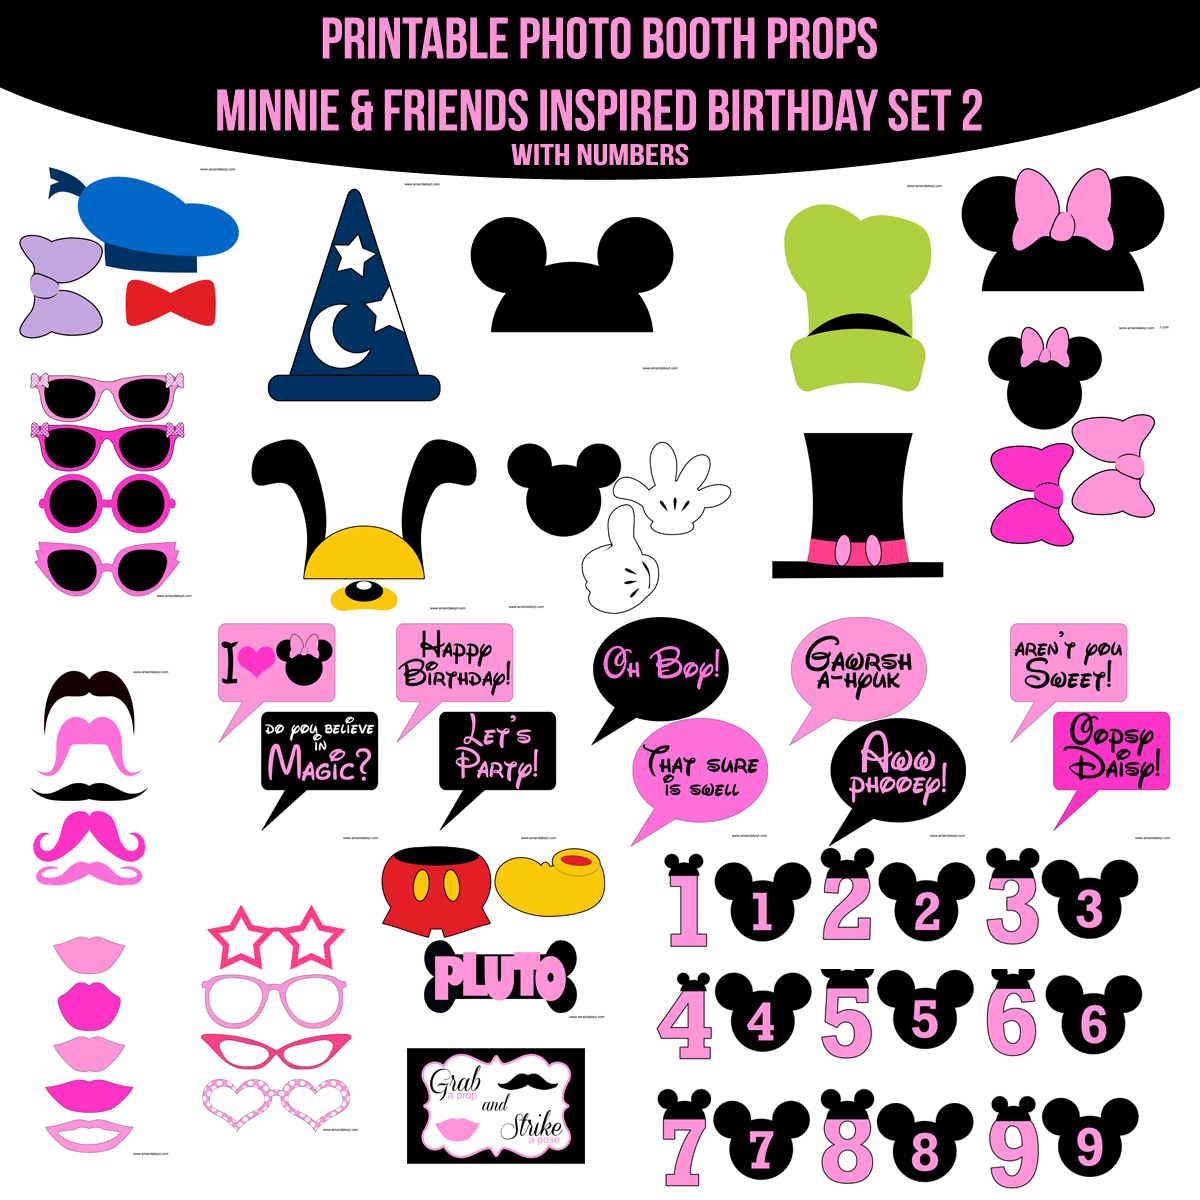 graphic about Printable Photo Booth Props Birthday called Prompt Obtain Minnie Mouse Buddies Birthday Influenced Printable Image Booth Prop Fixed 2 Amanda Keyt Printable Styles